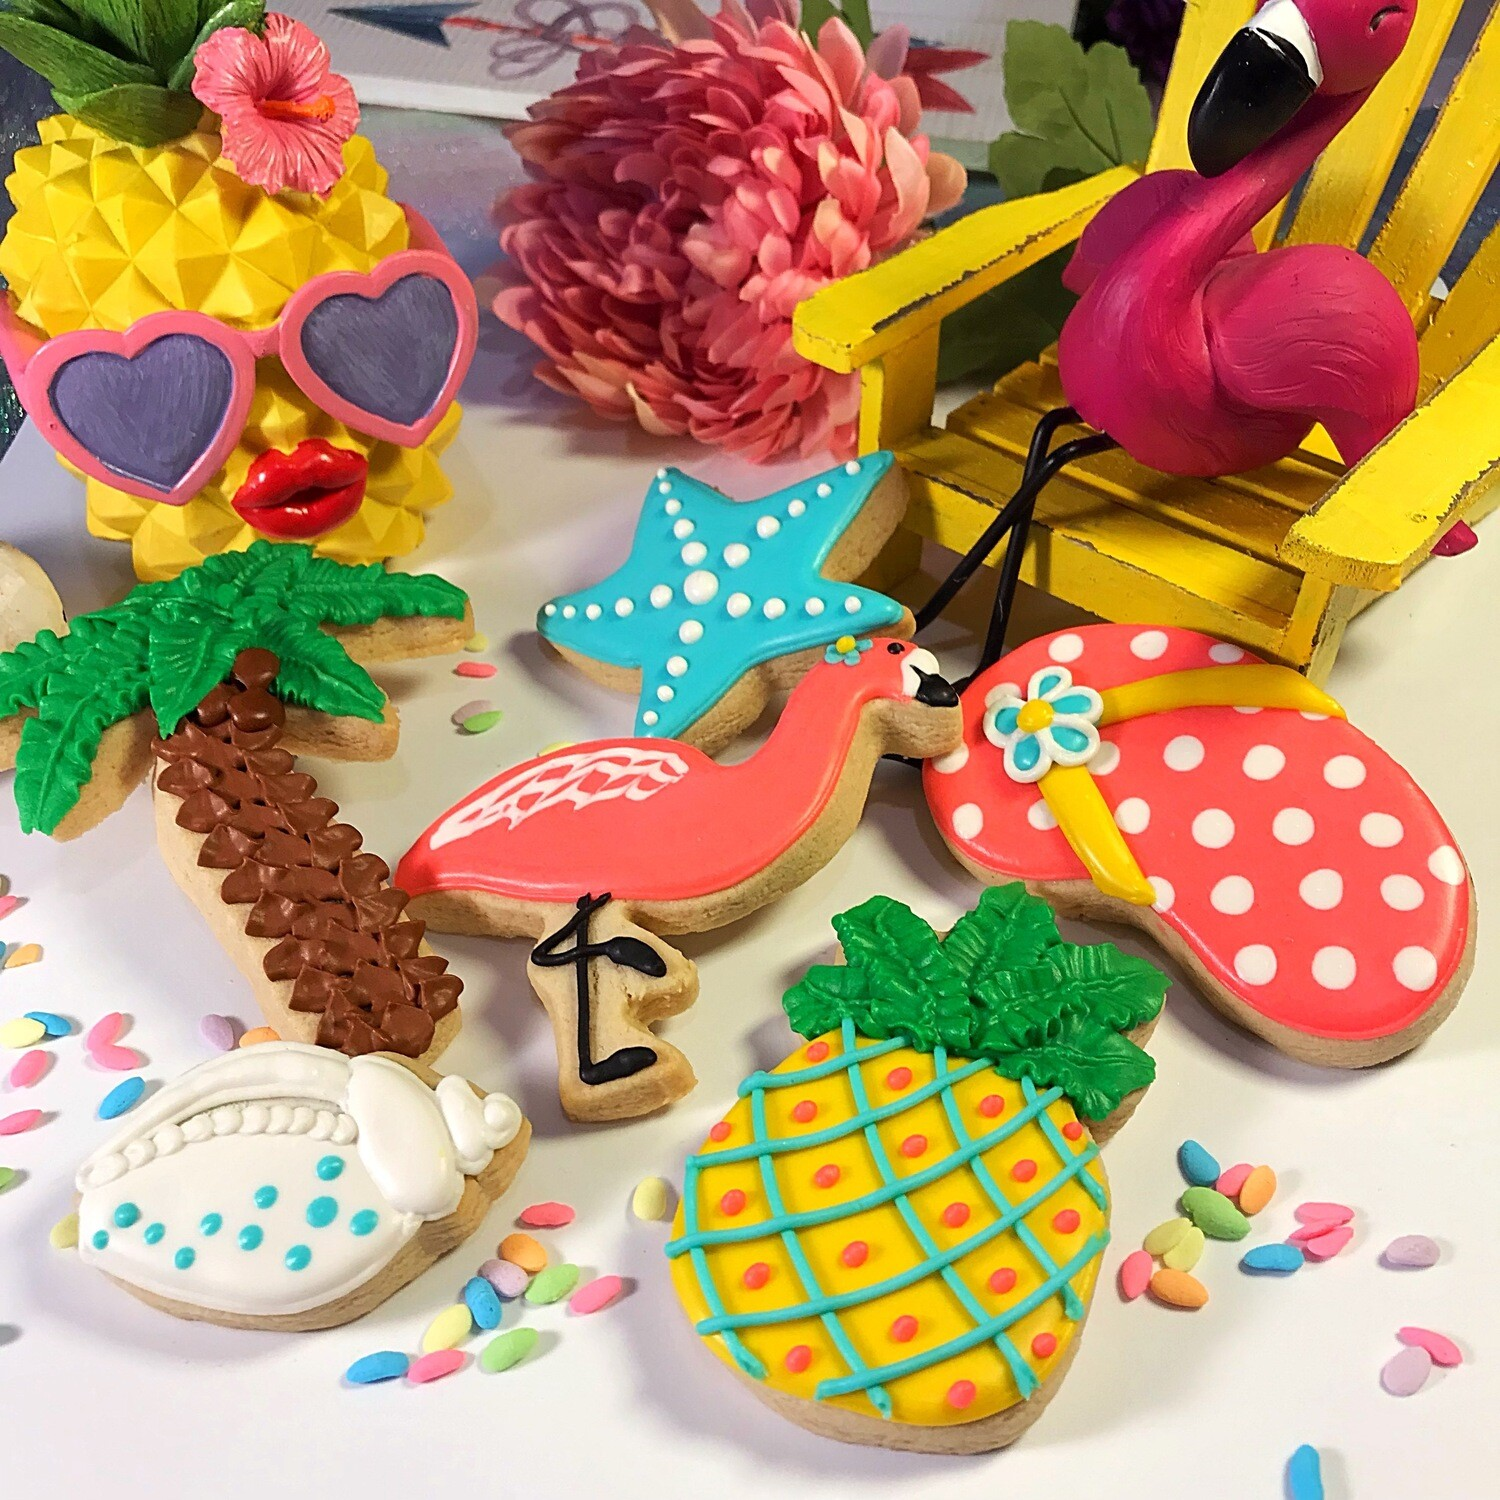 SUMMER TIME Decorating Workshop - SUNDAY, JUNE 23, 2019 at 3:00 p.m. (THE POTPOURRI HOUSE) - SENIOR TICKET (Age 55+)